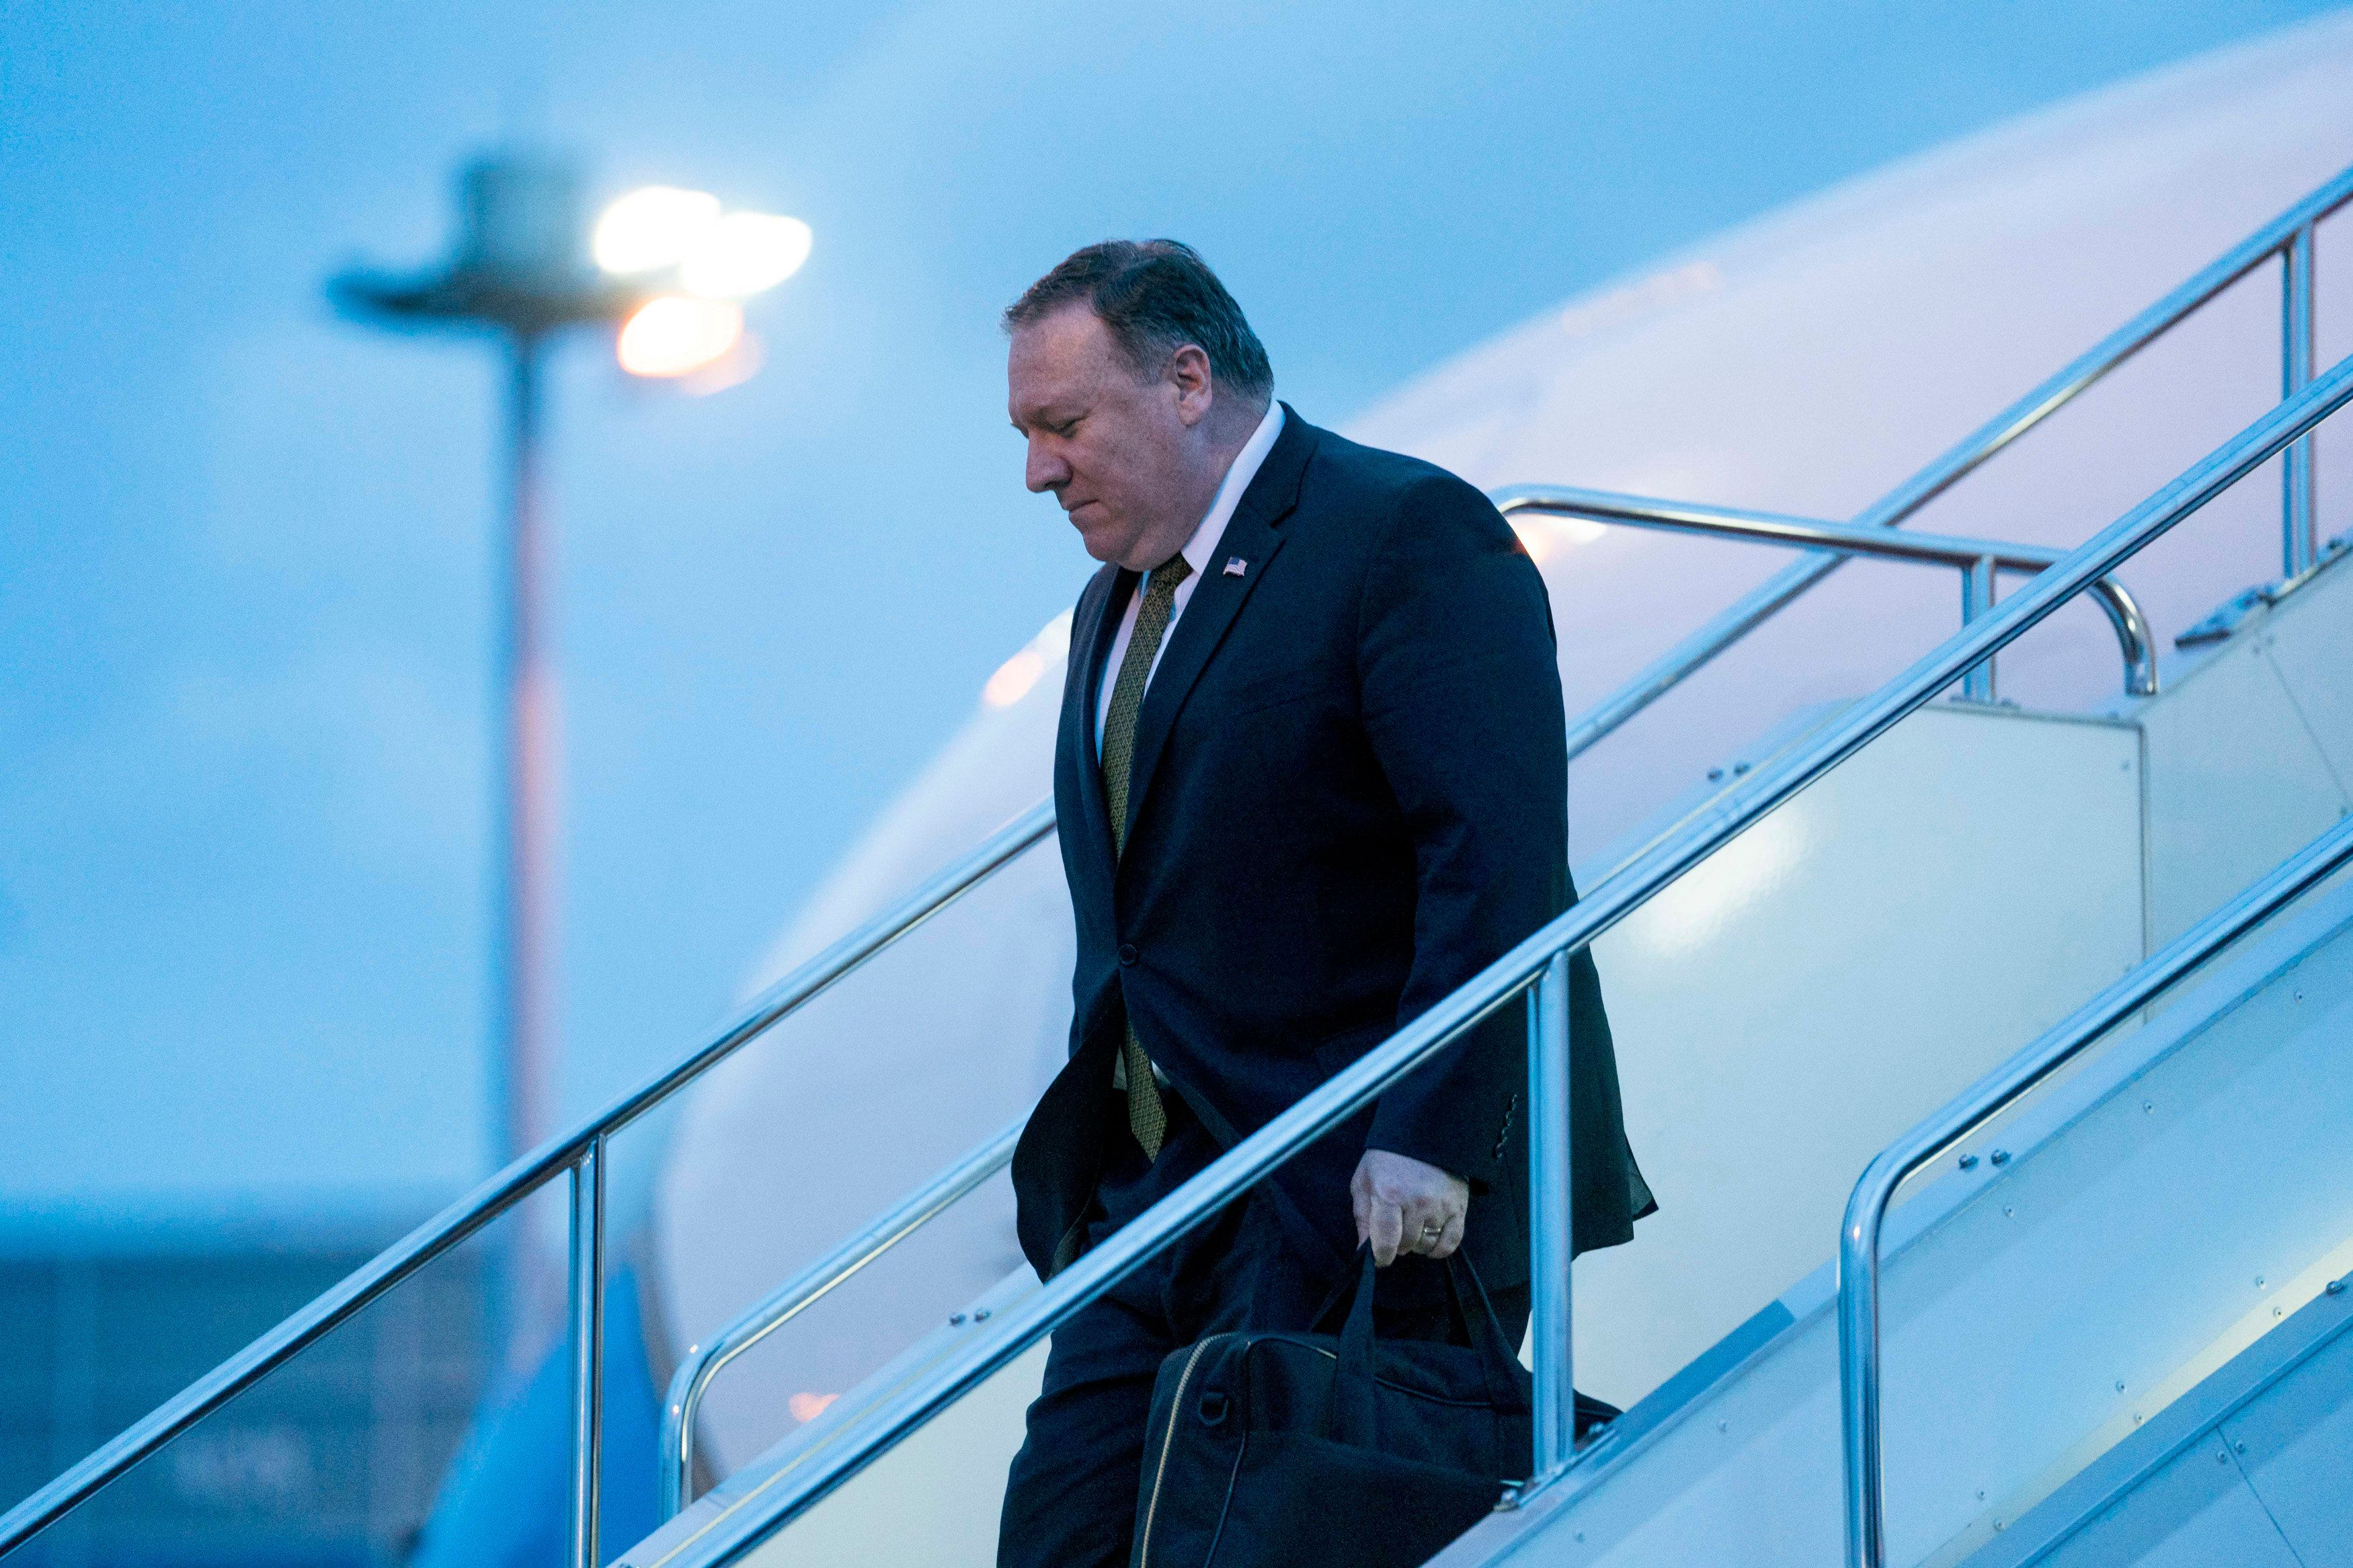 US Secretary of State Mike Pompeo arrives at Haneda Airport in Tokyo on July 7, 2018. - Pompeo insisted that two days of talks with his North Korean counterpart on dismantling Pyongyang's nuclear arsenal had been 'very productive'. (Photo by Andrew Harnik / POOL / AFP)        (Photo credit should read ANDREW HARNIK/AFP/Getty Images)